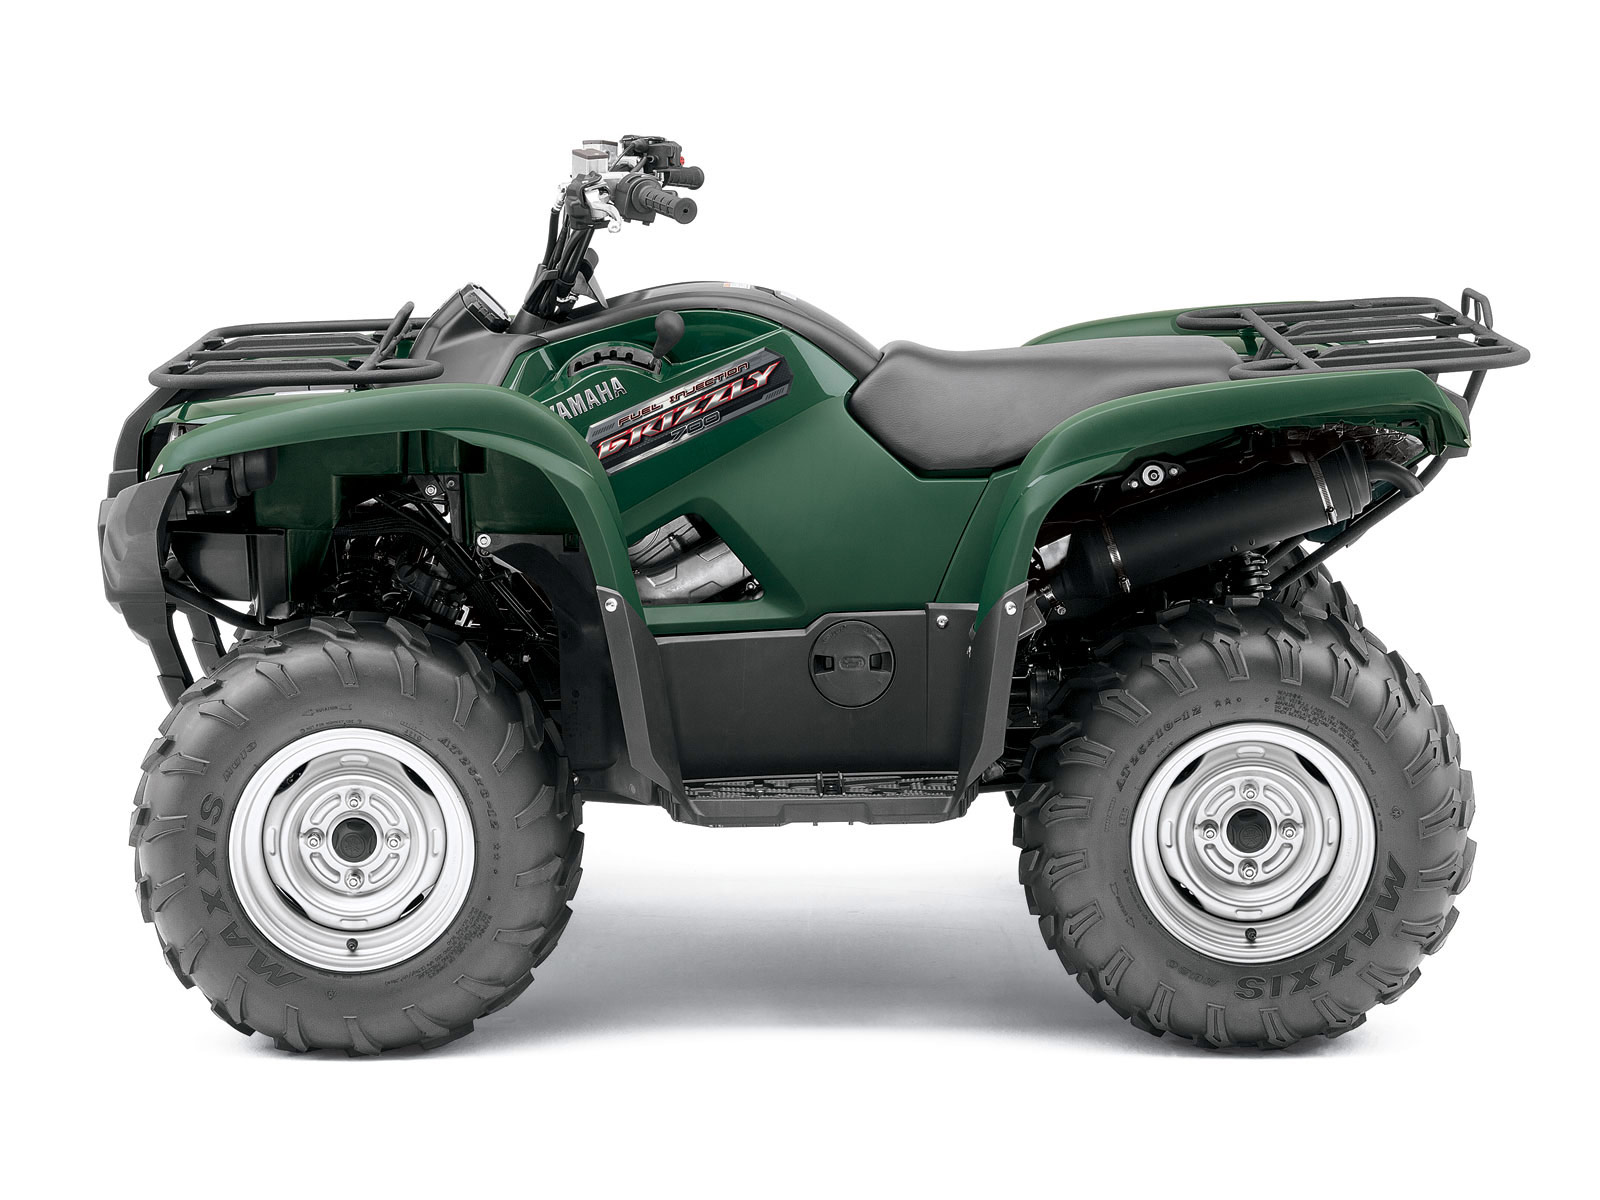 2012 yamaha grizzly 700 fi auto 4x4 atv pictures review